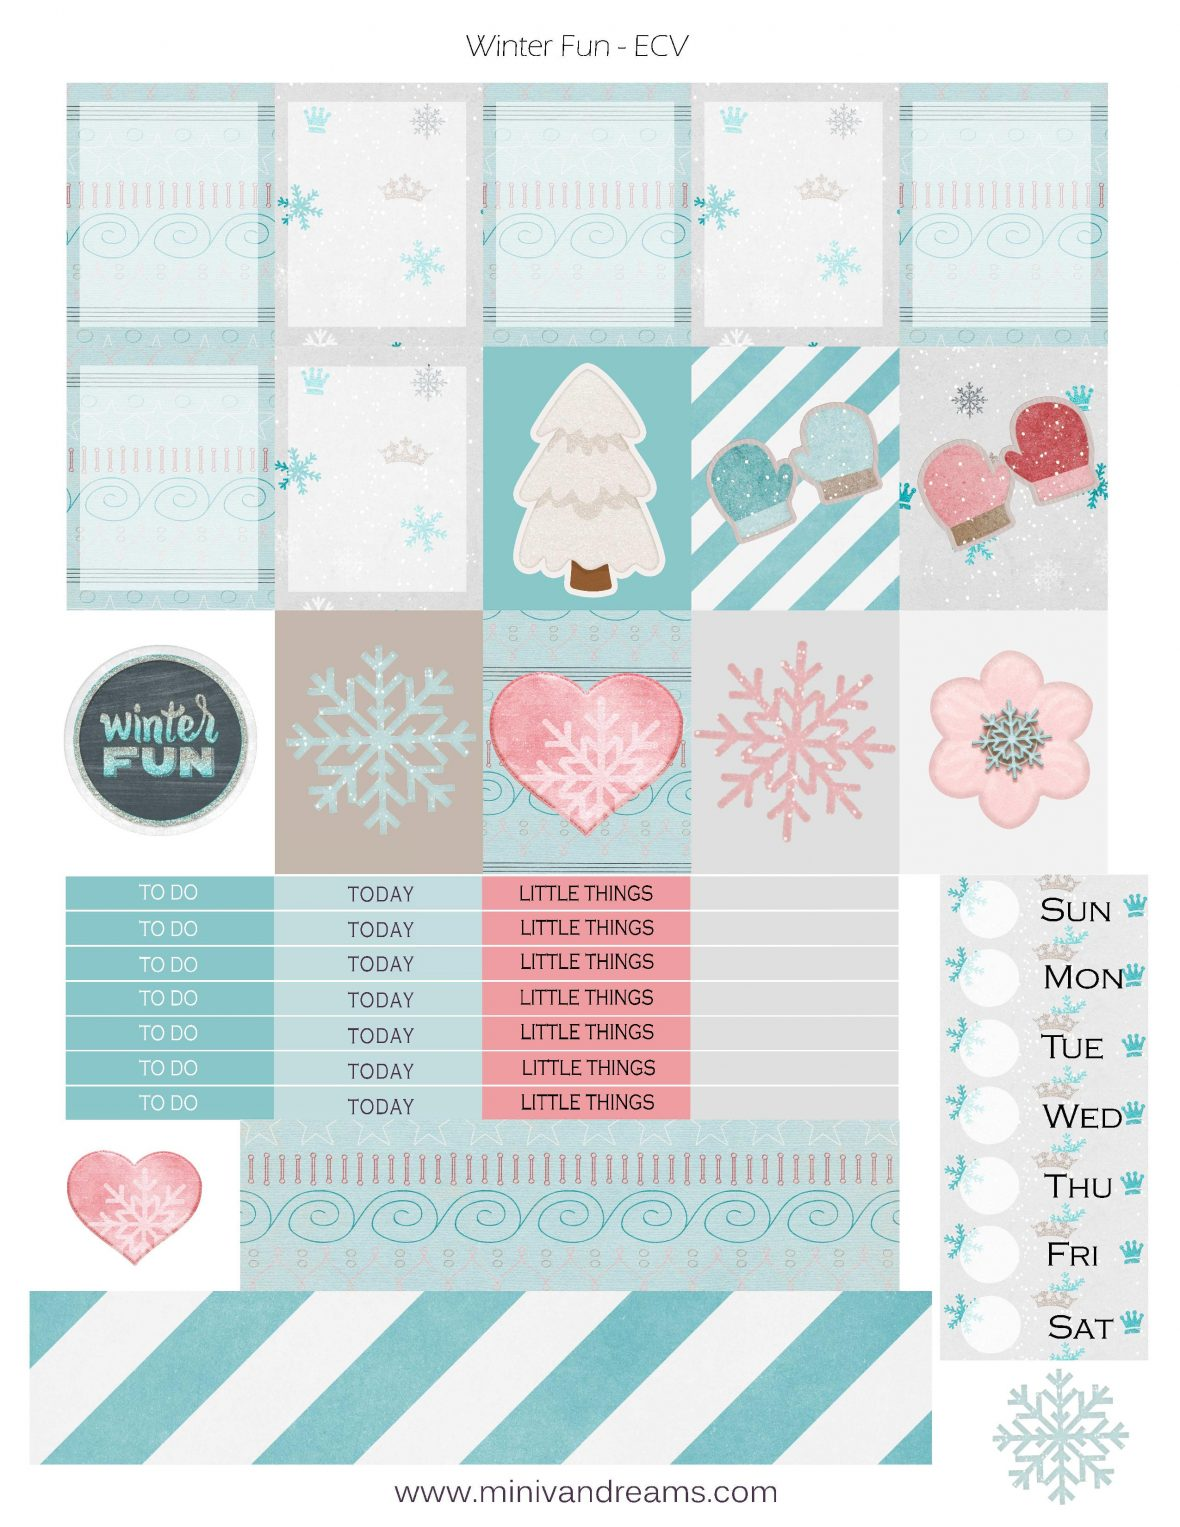 Free Printable Planner Stickers Winter Fun Mini Van Dreams